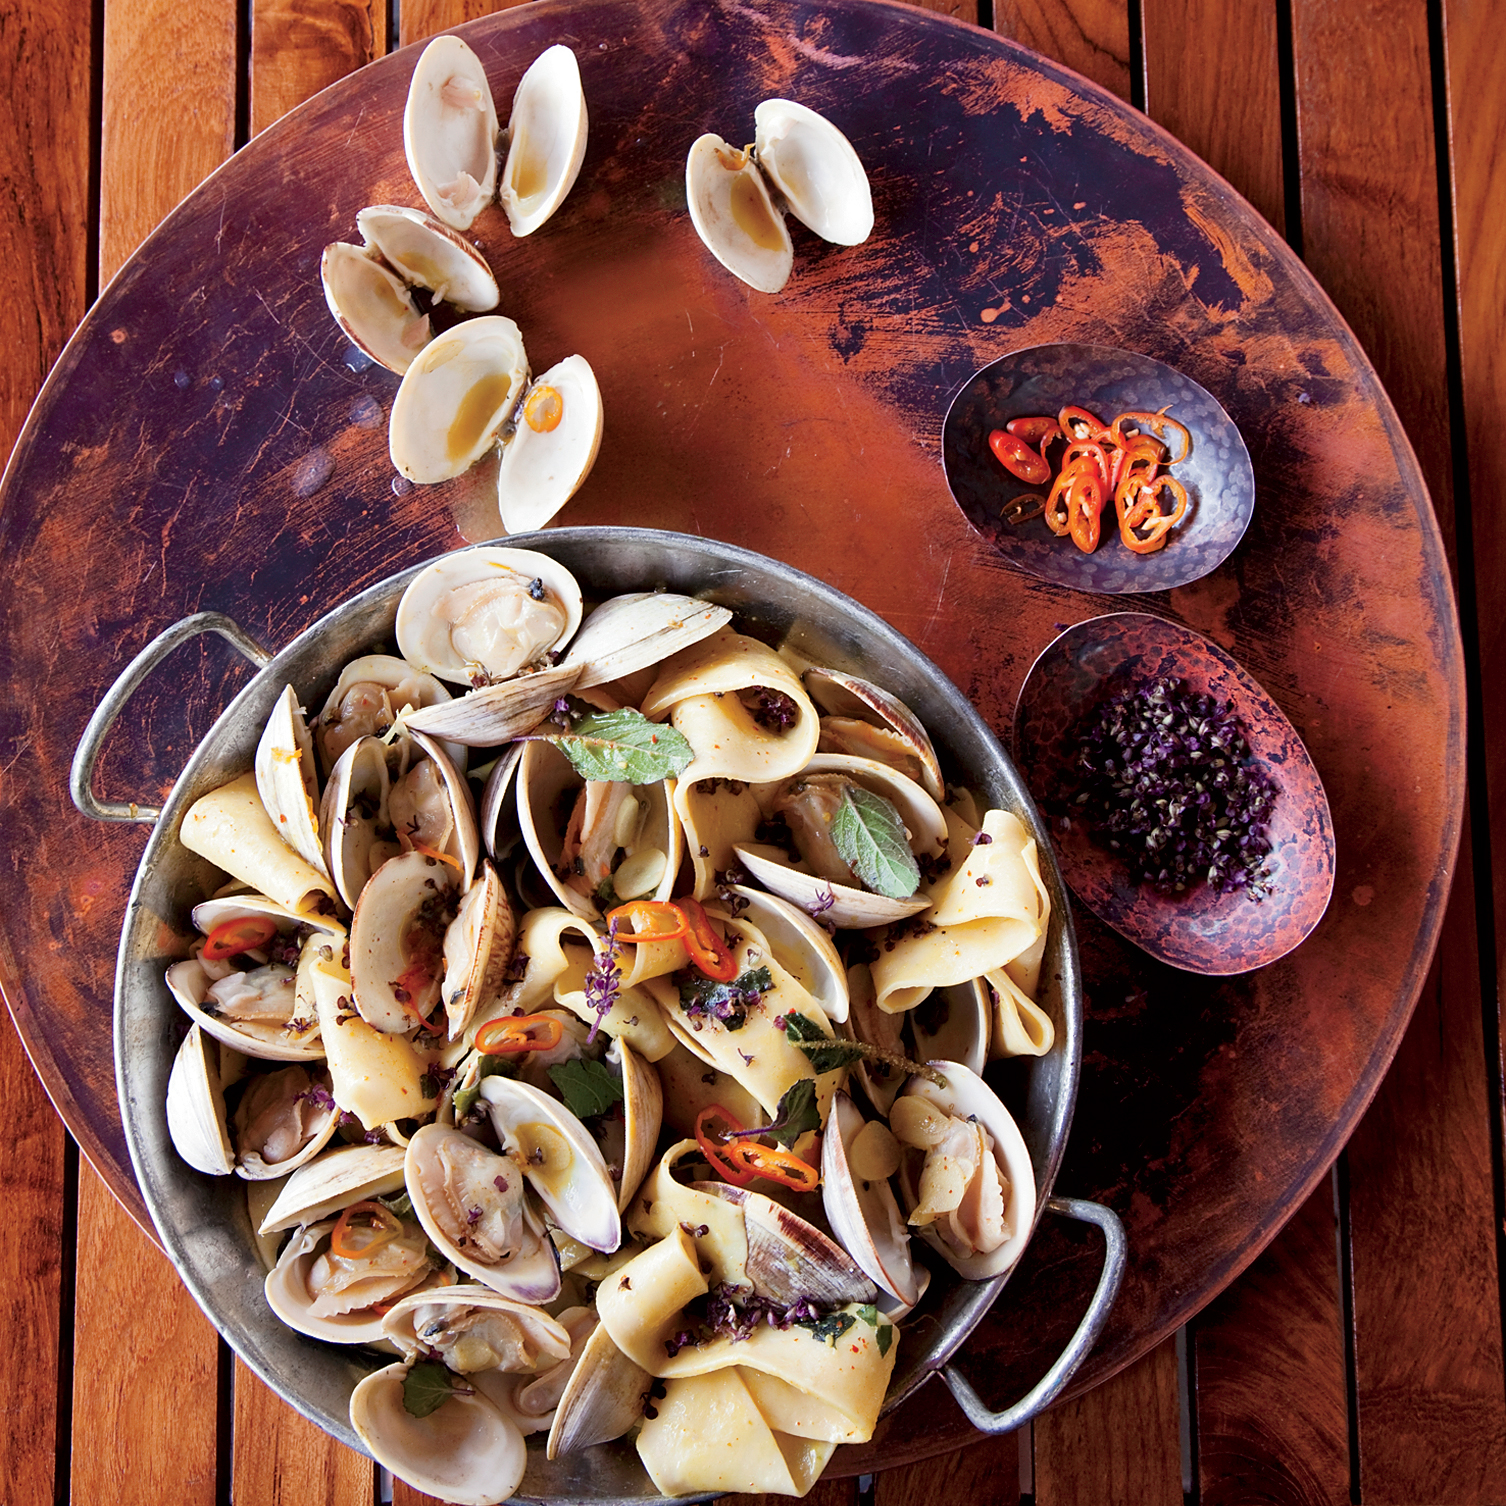 images-sys-201112-r-pappardelle-with-clams-turmeric-and-habaneros.jpg